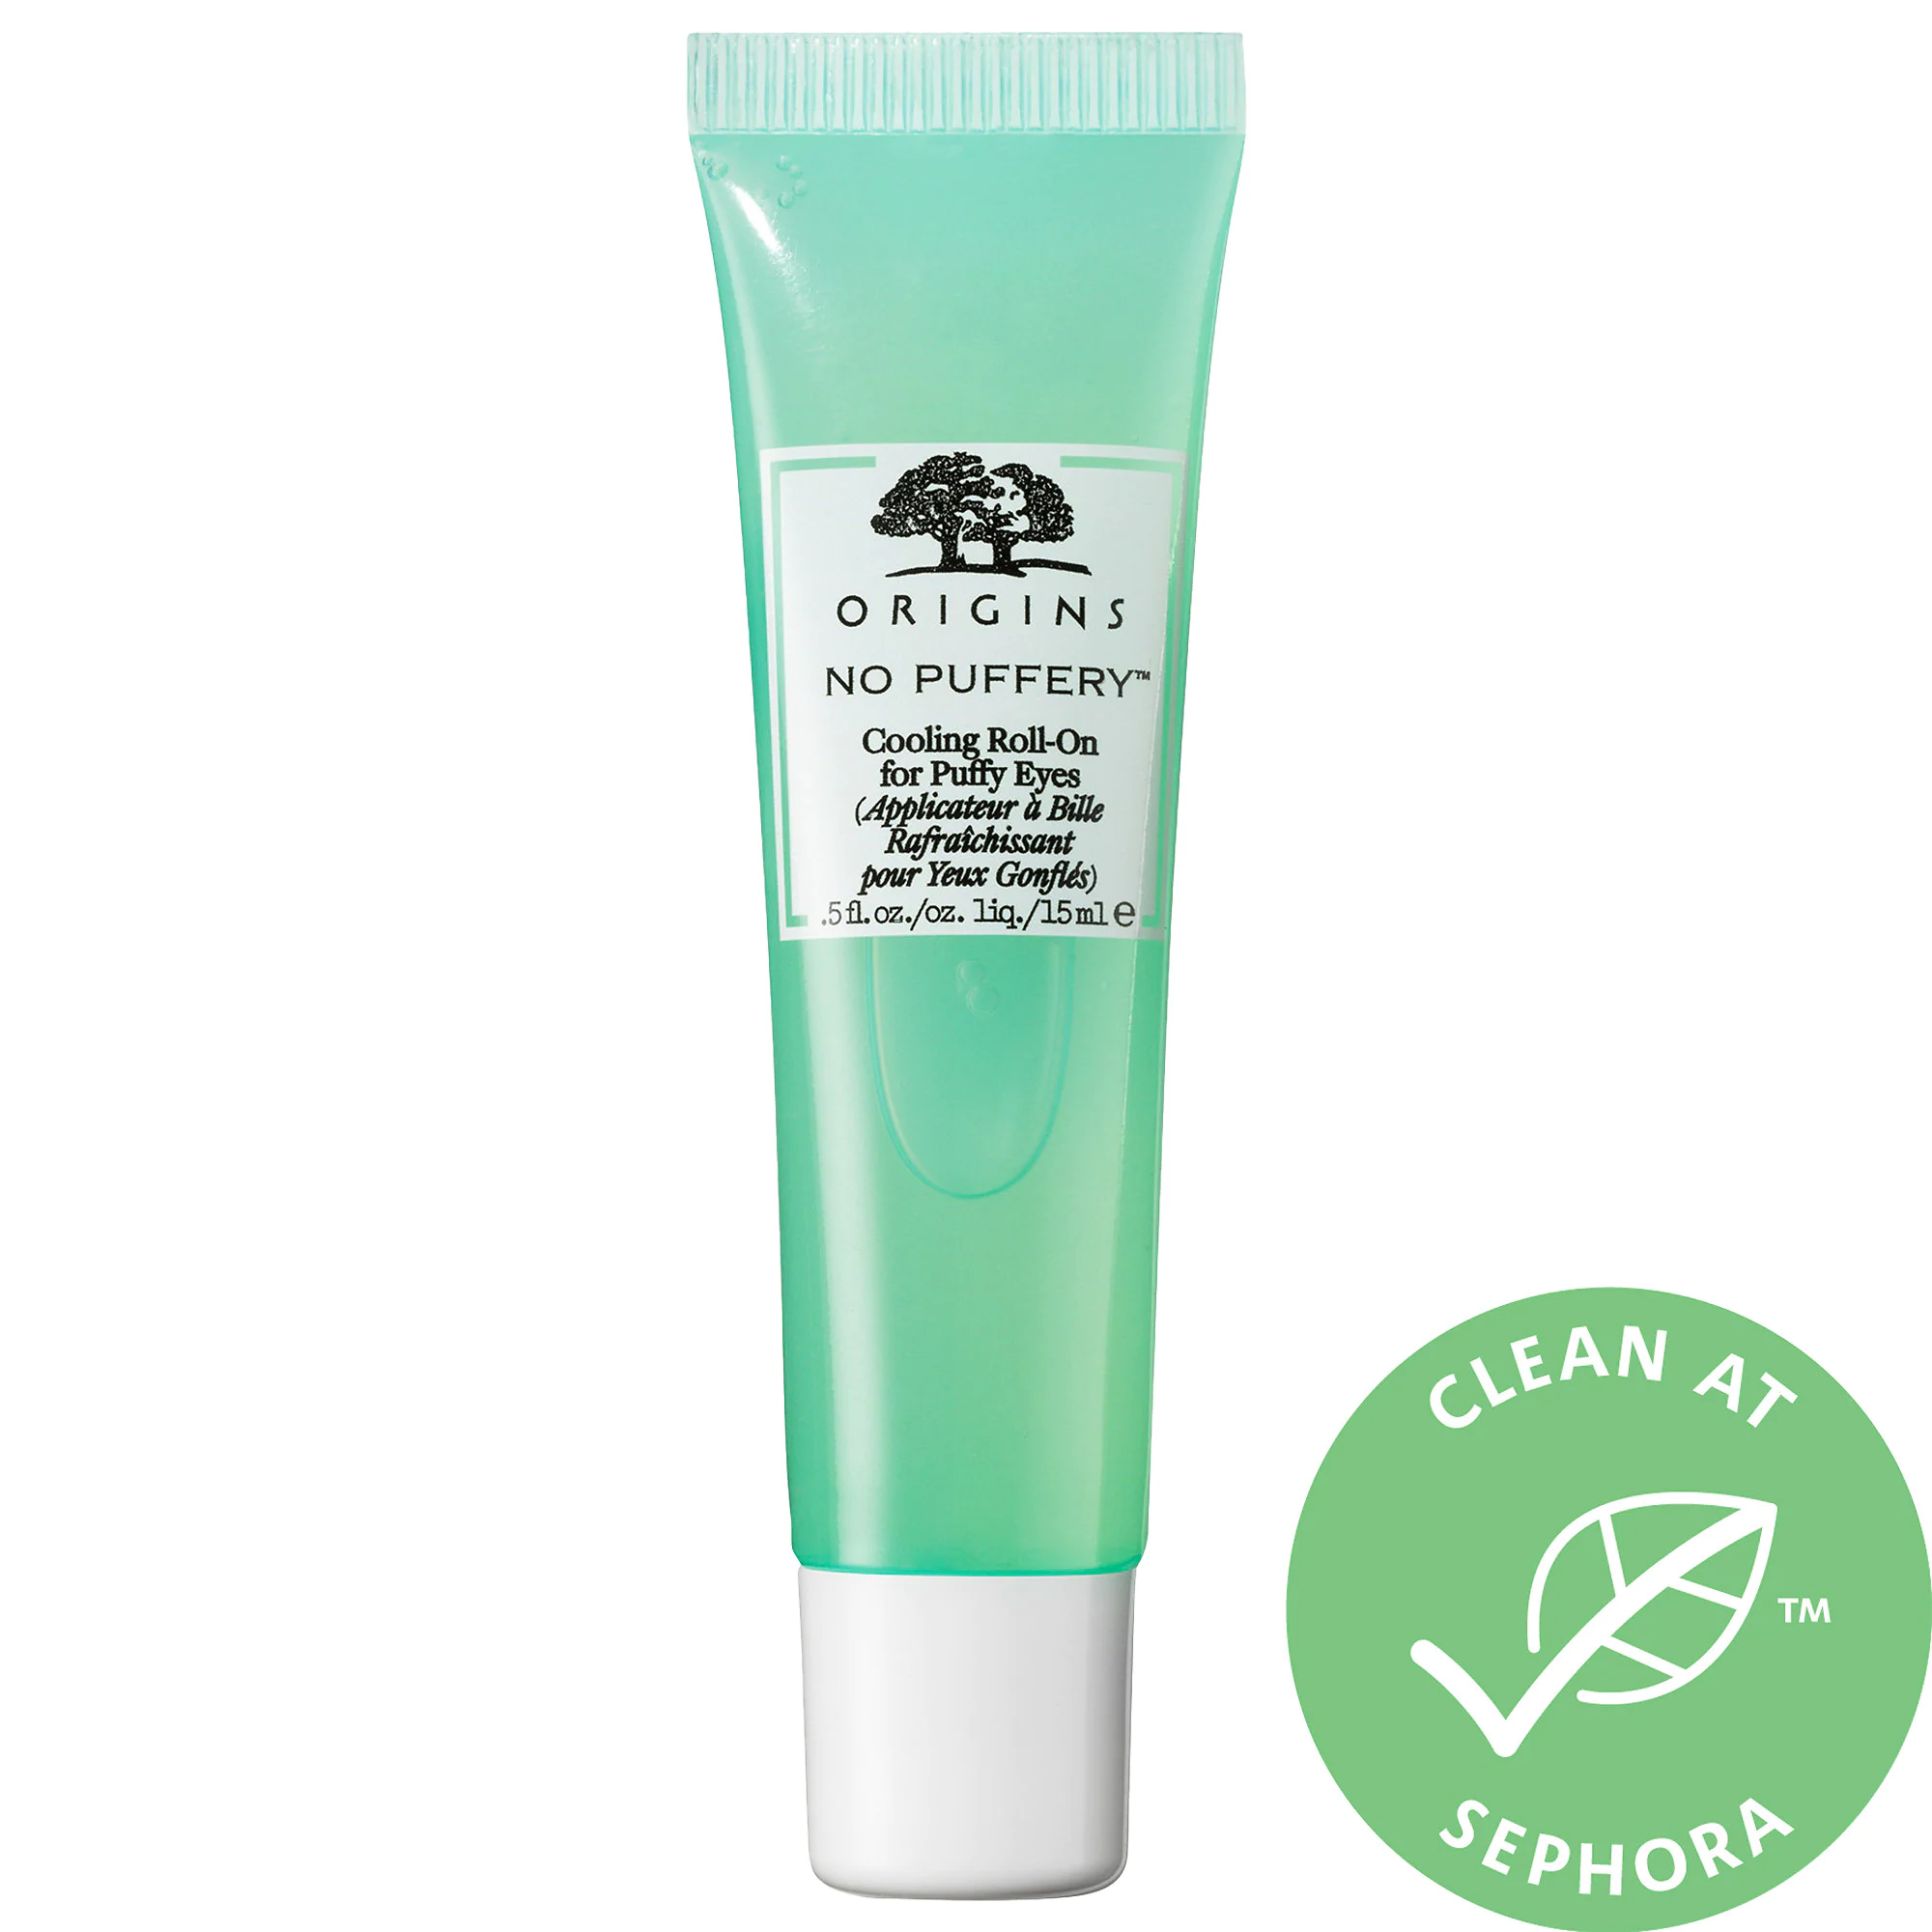 Origins-No Puffery™ Cooling Roll-On For Puffy Eyes